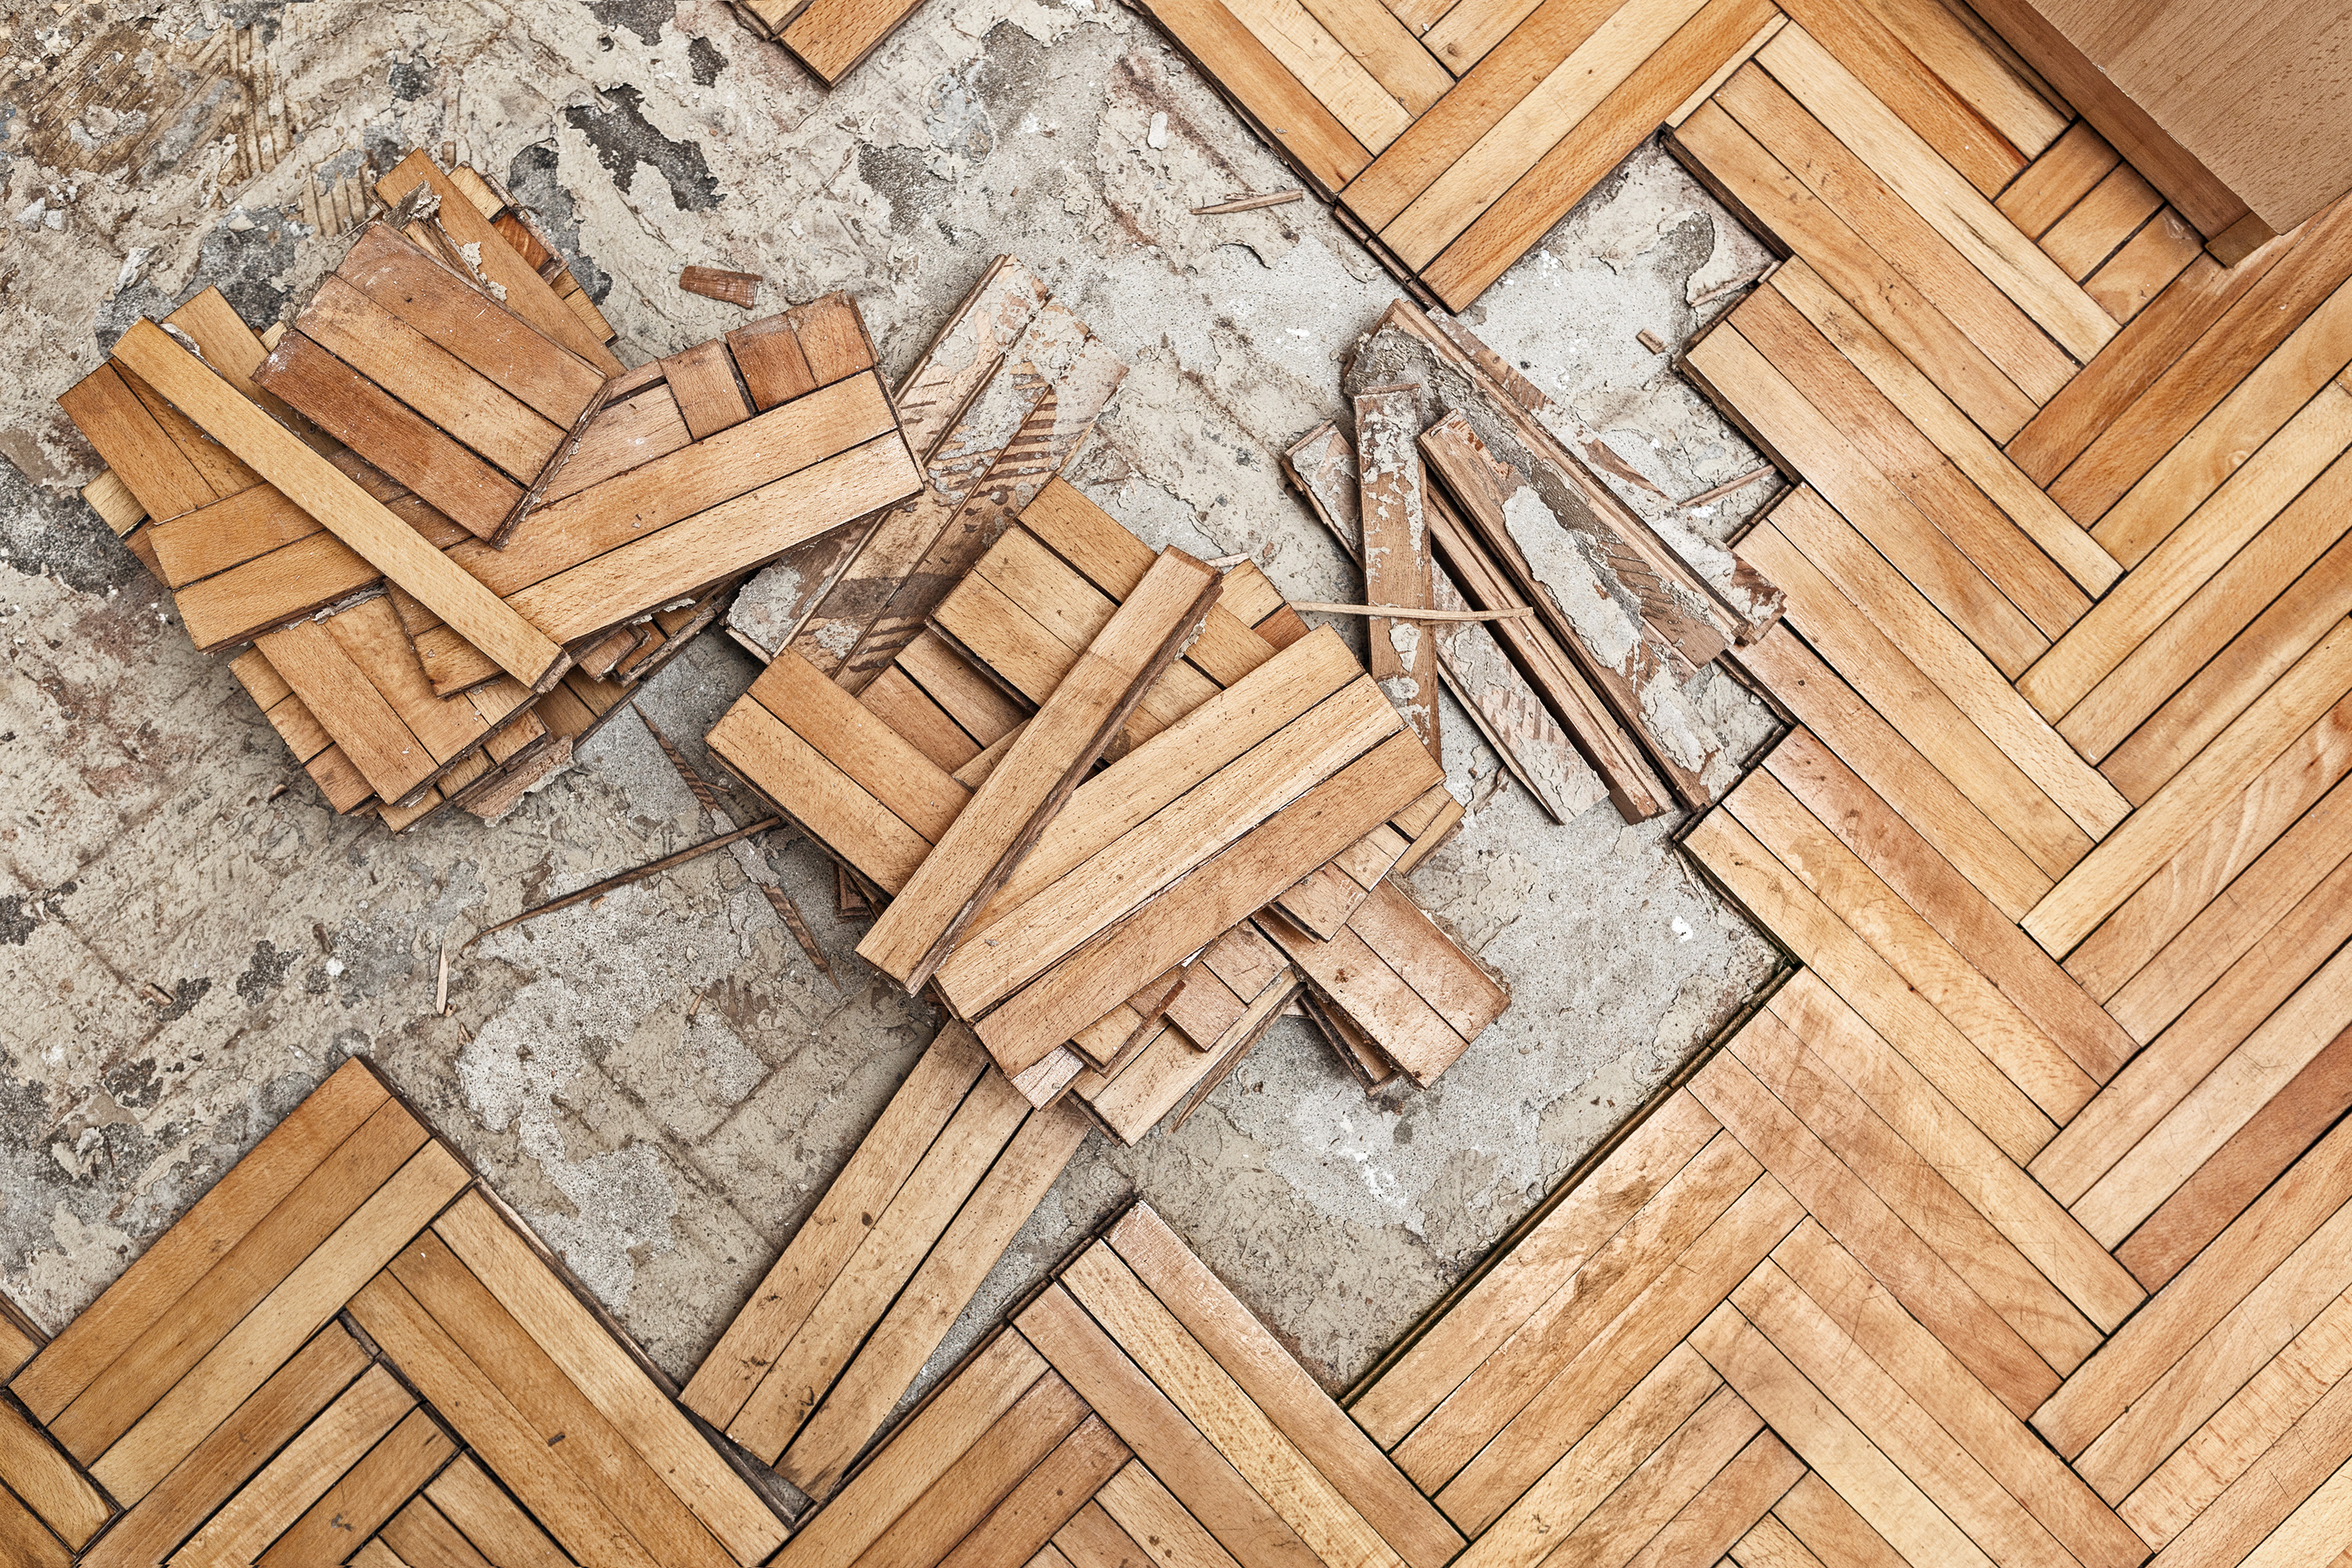 broken and damaged wooden floor